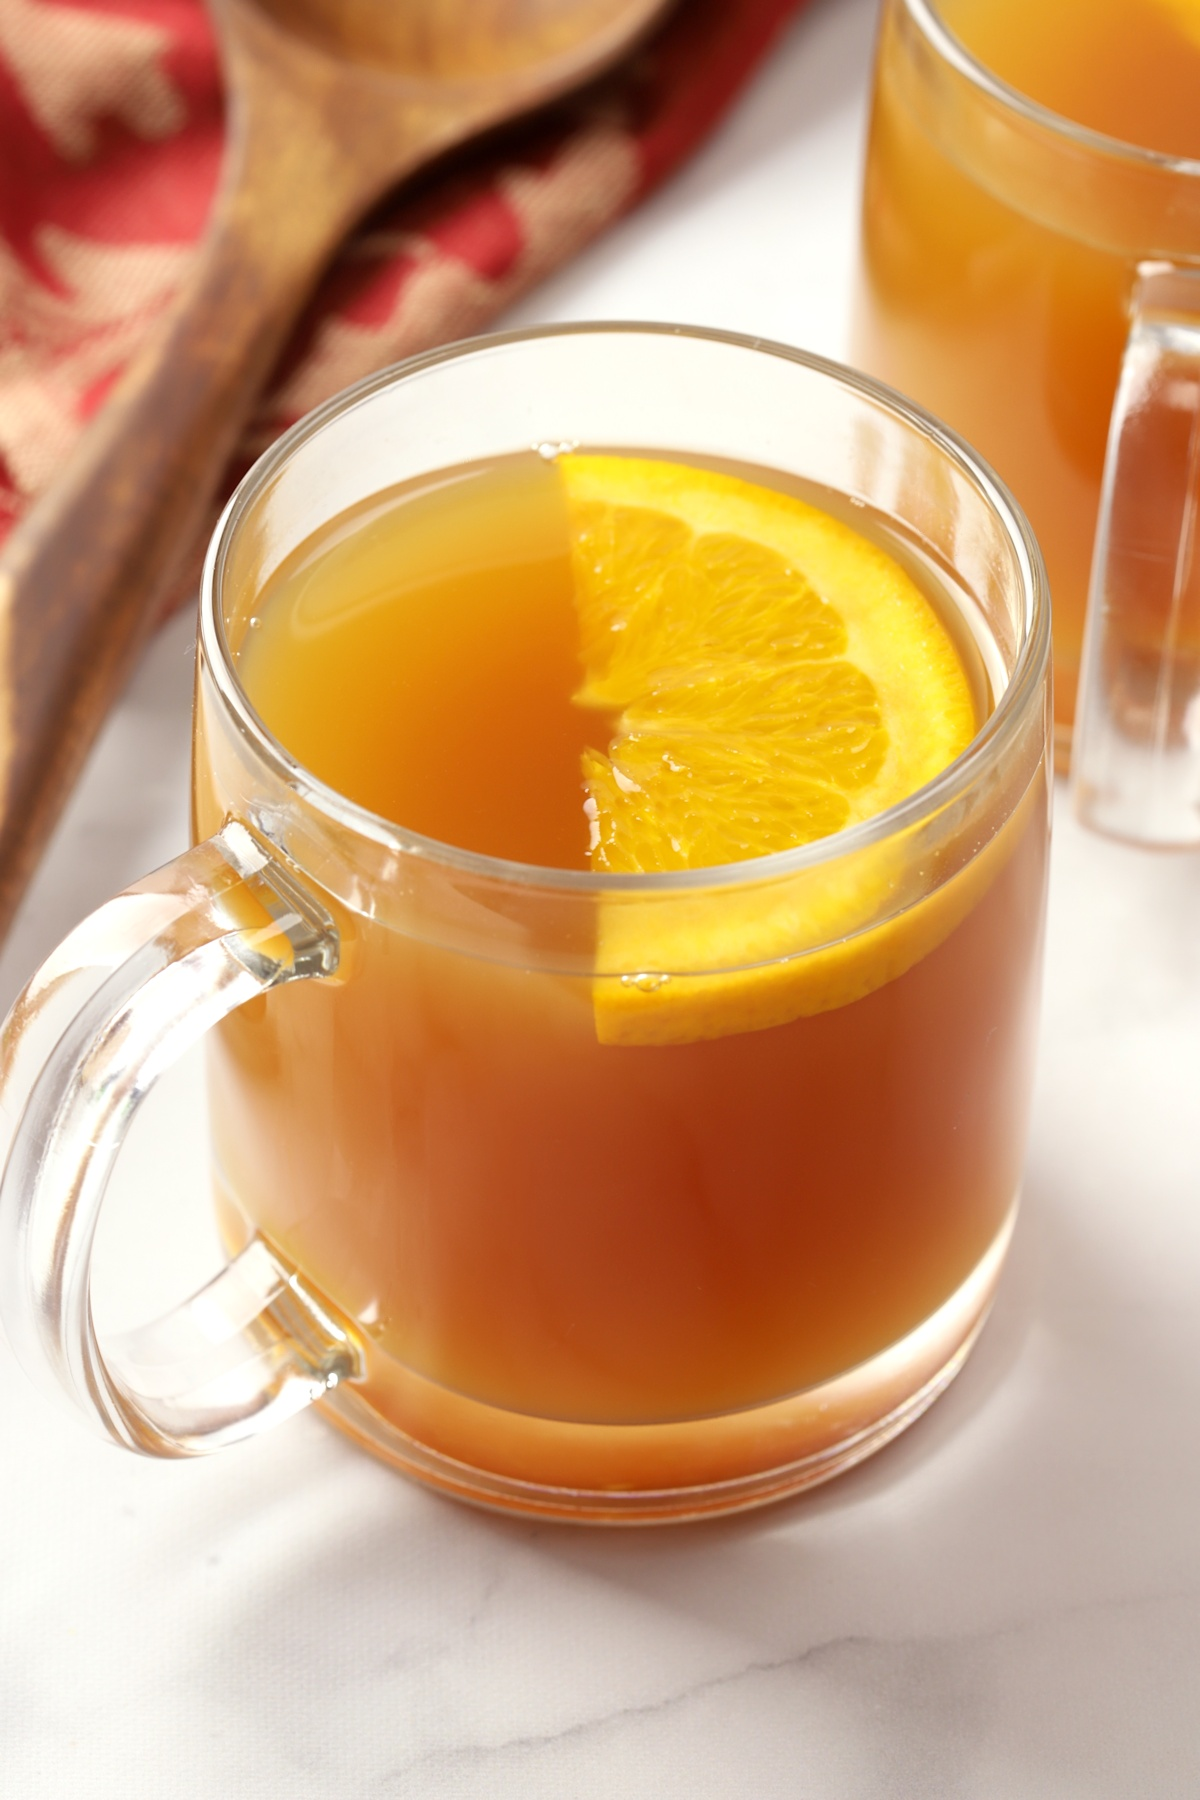 Glass mug filled with apple cider, garnished with an orange slice.